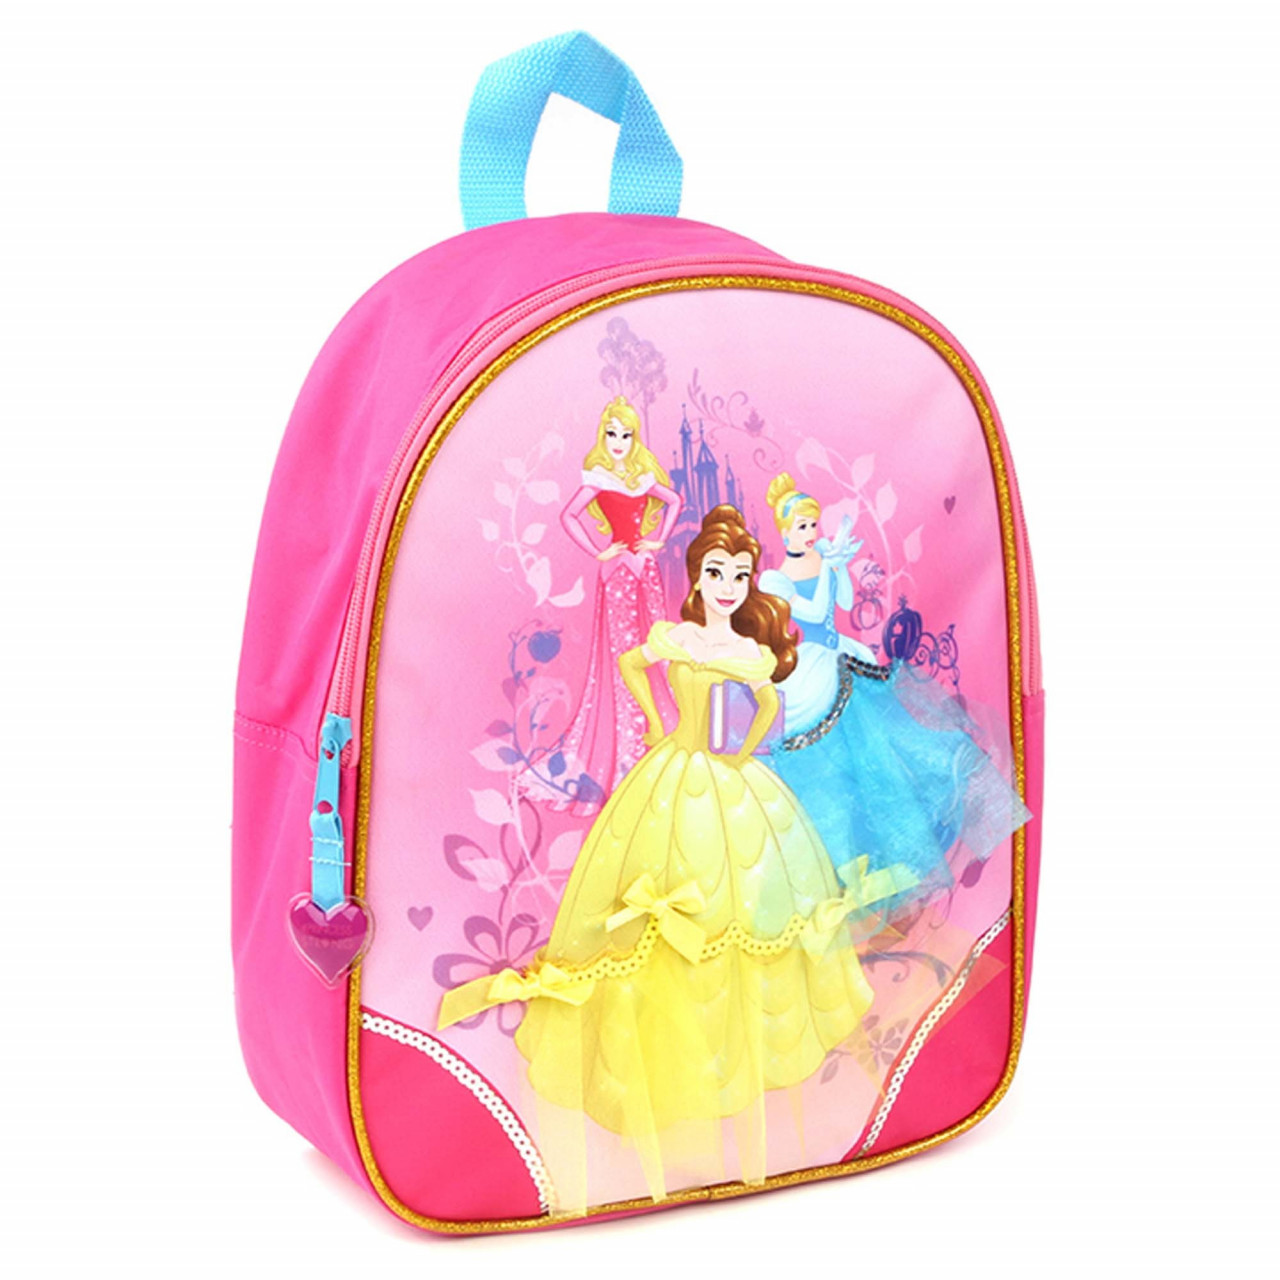 HTI-Living Princess Playstory Rucksack